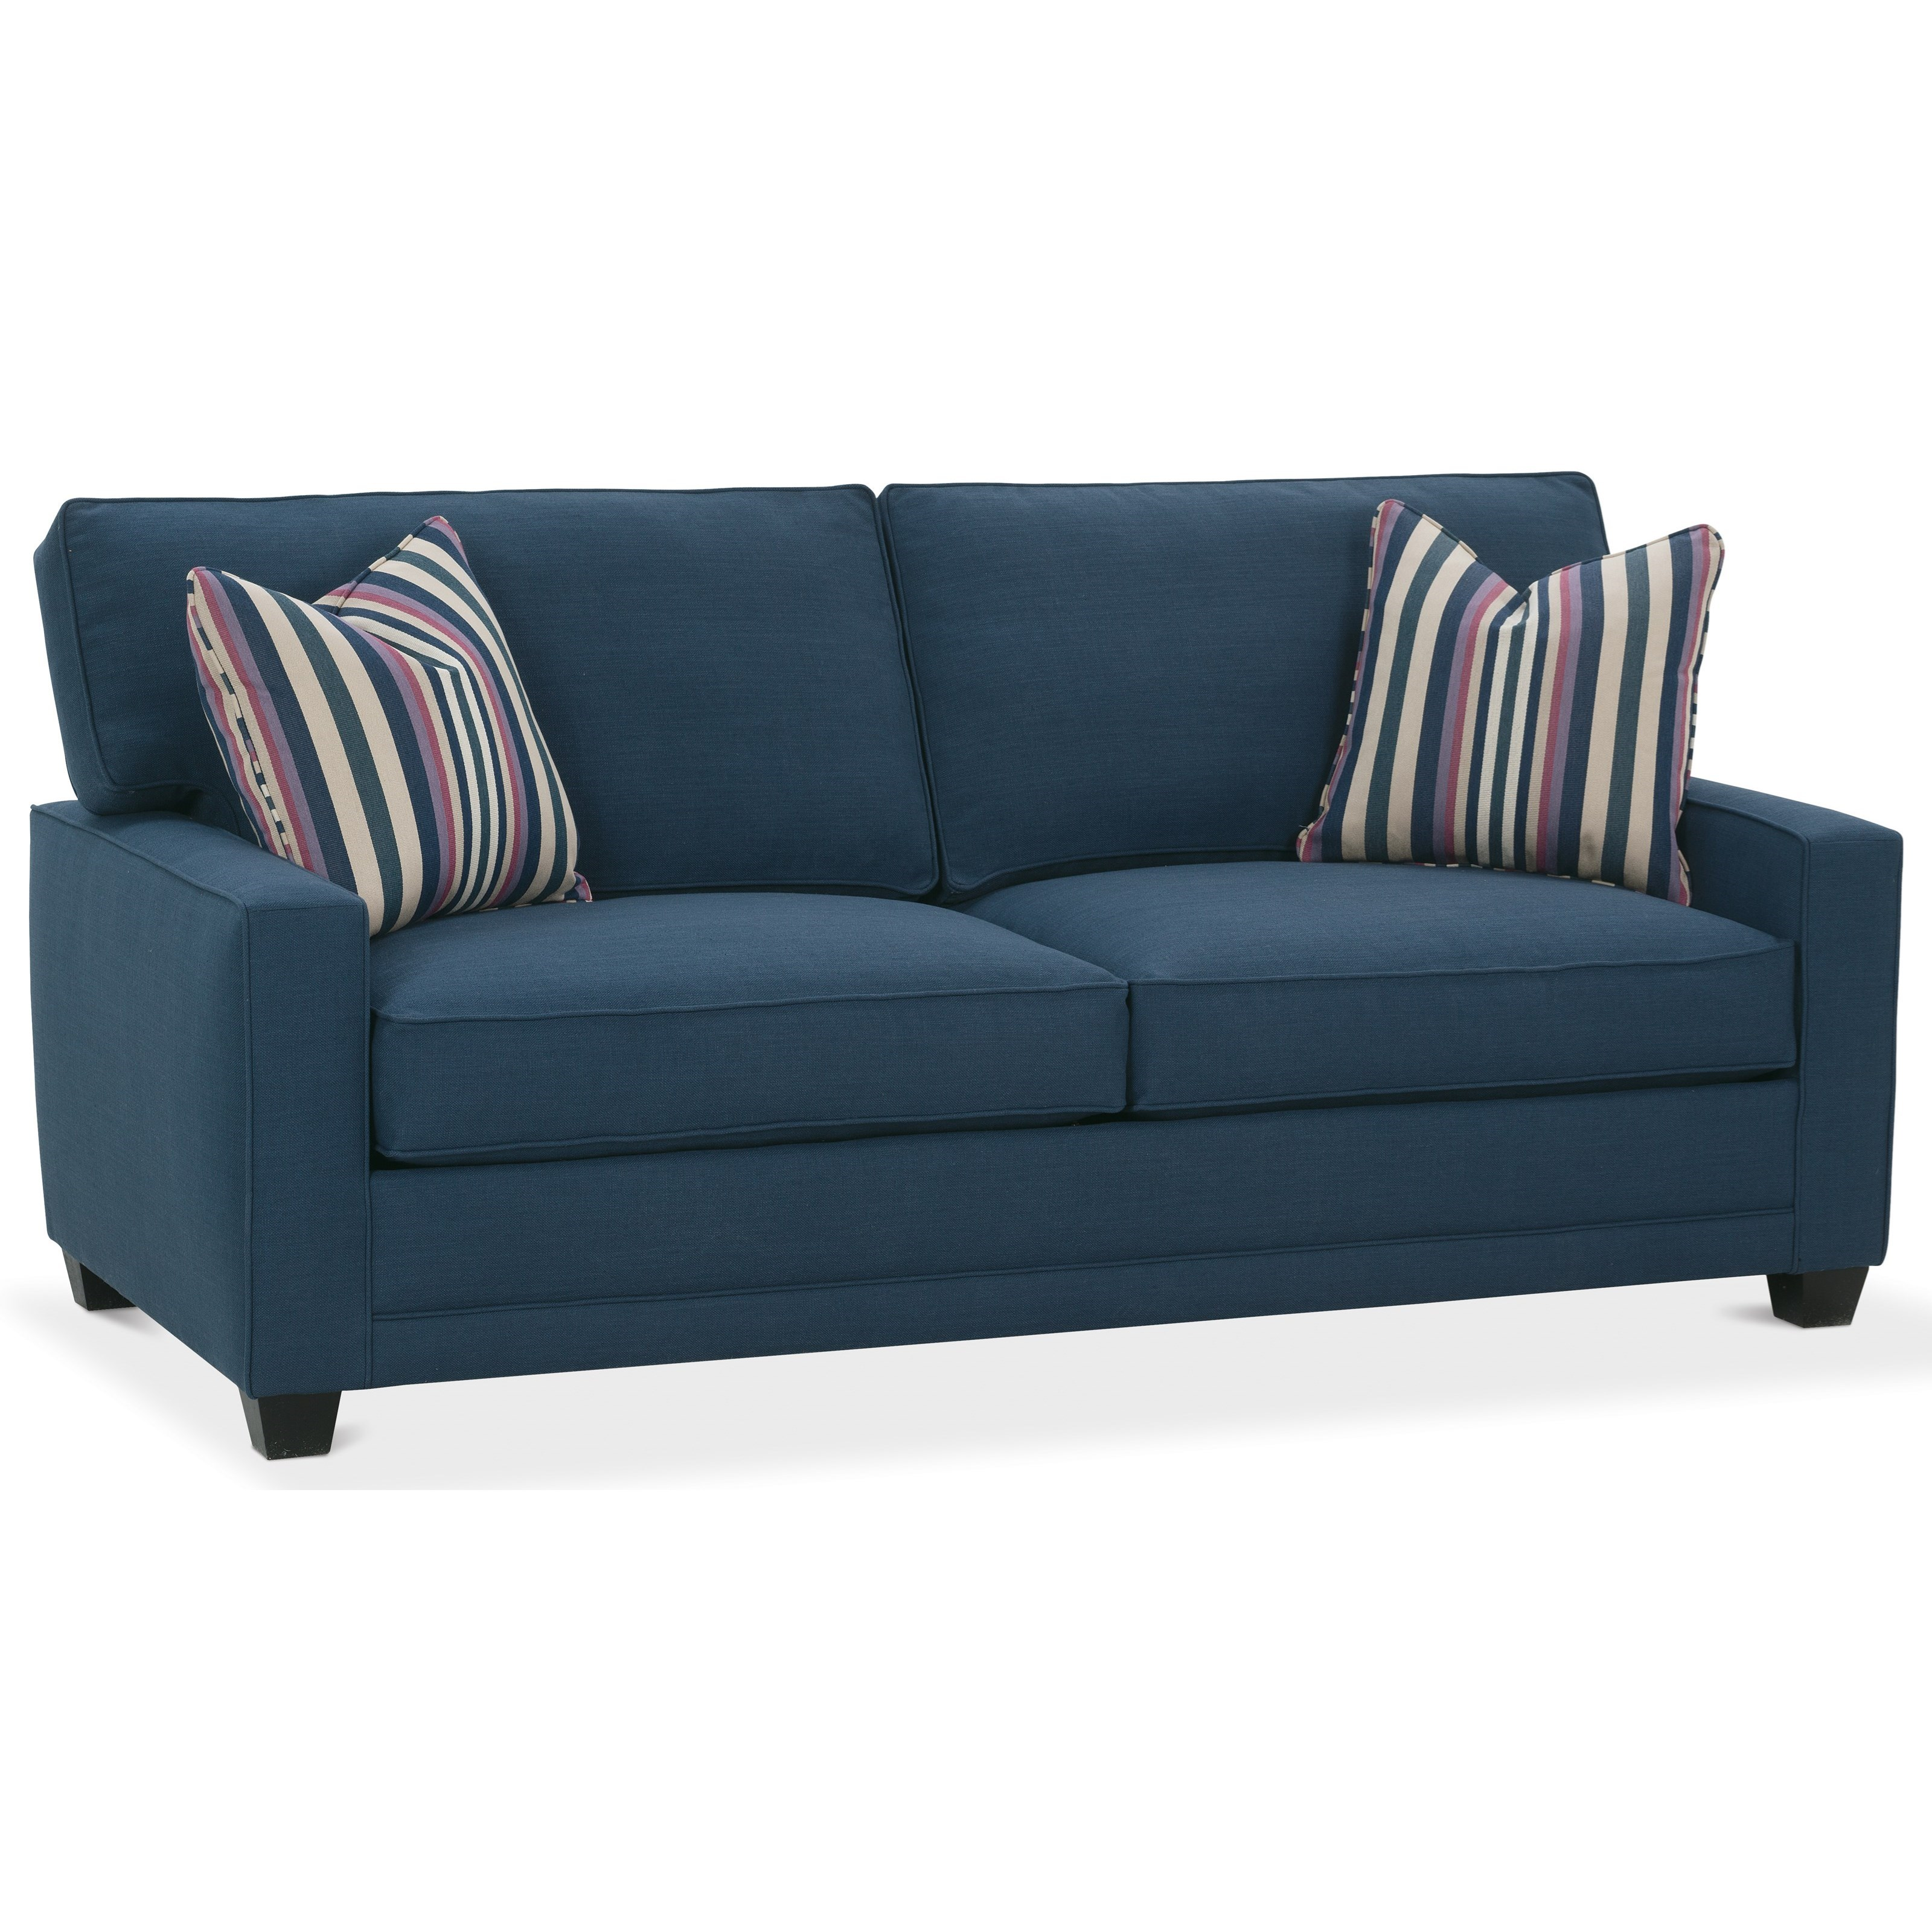 Rowe My Style I Customizable 2 Seat Sofa With Track Arms